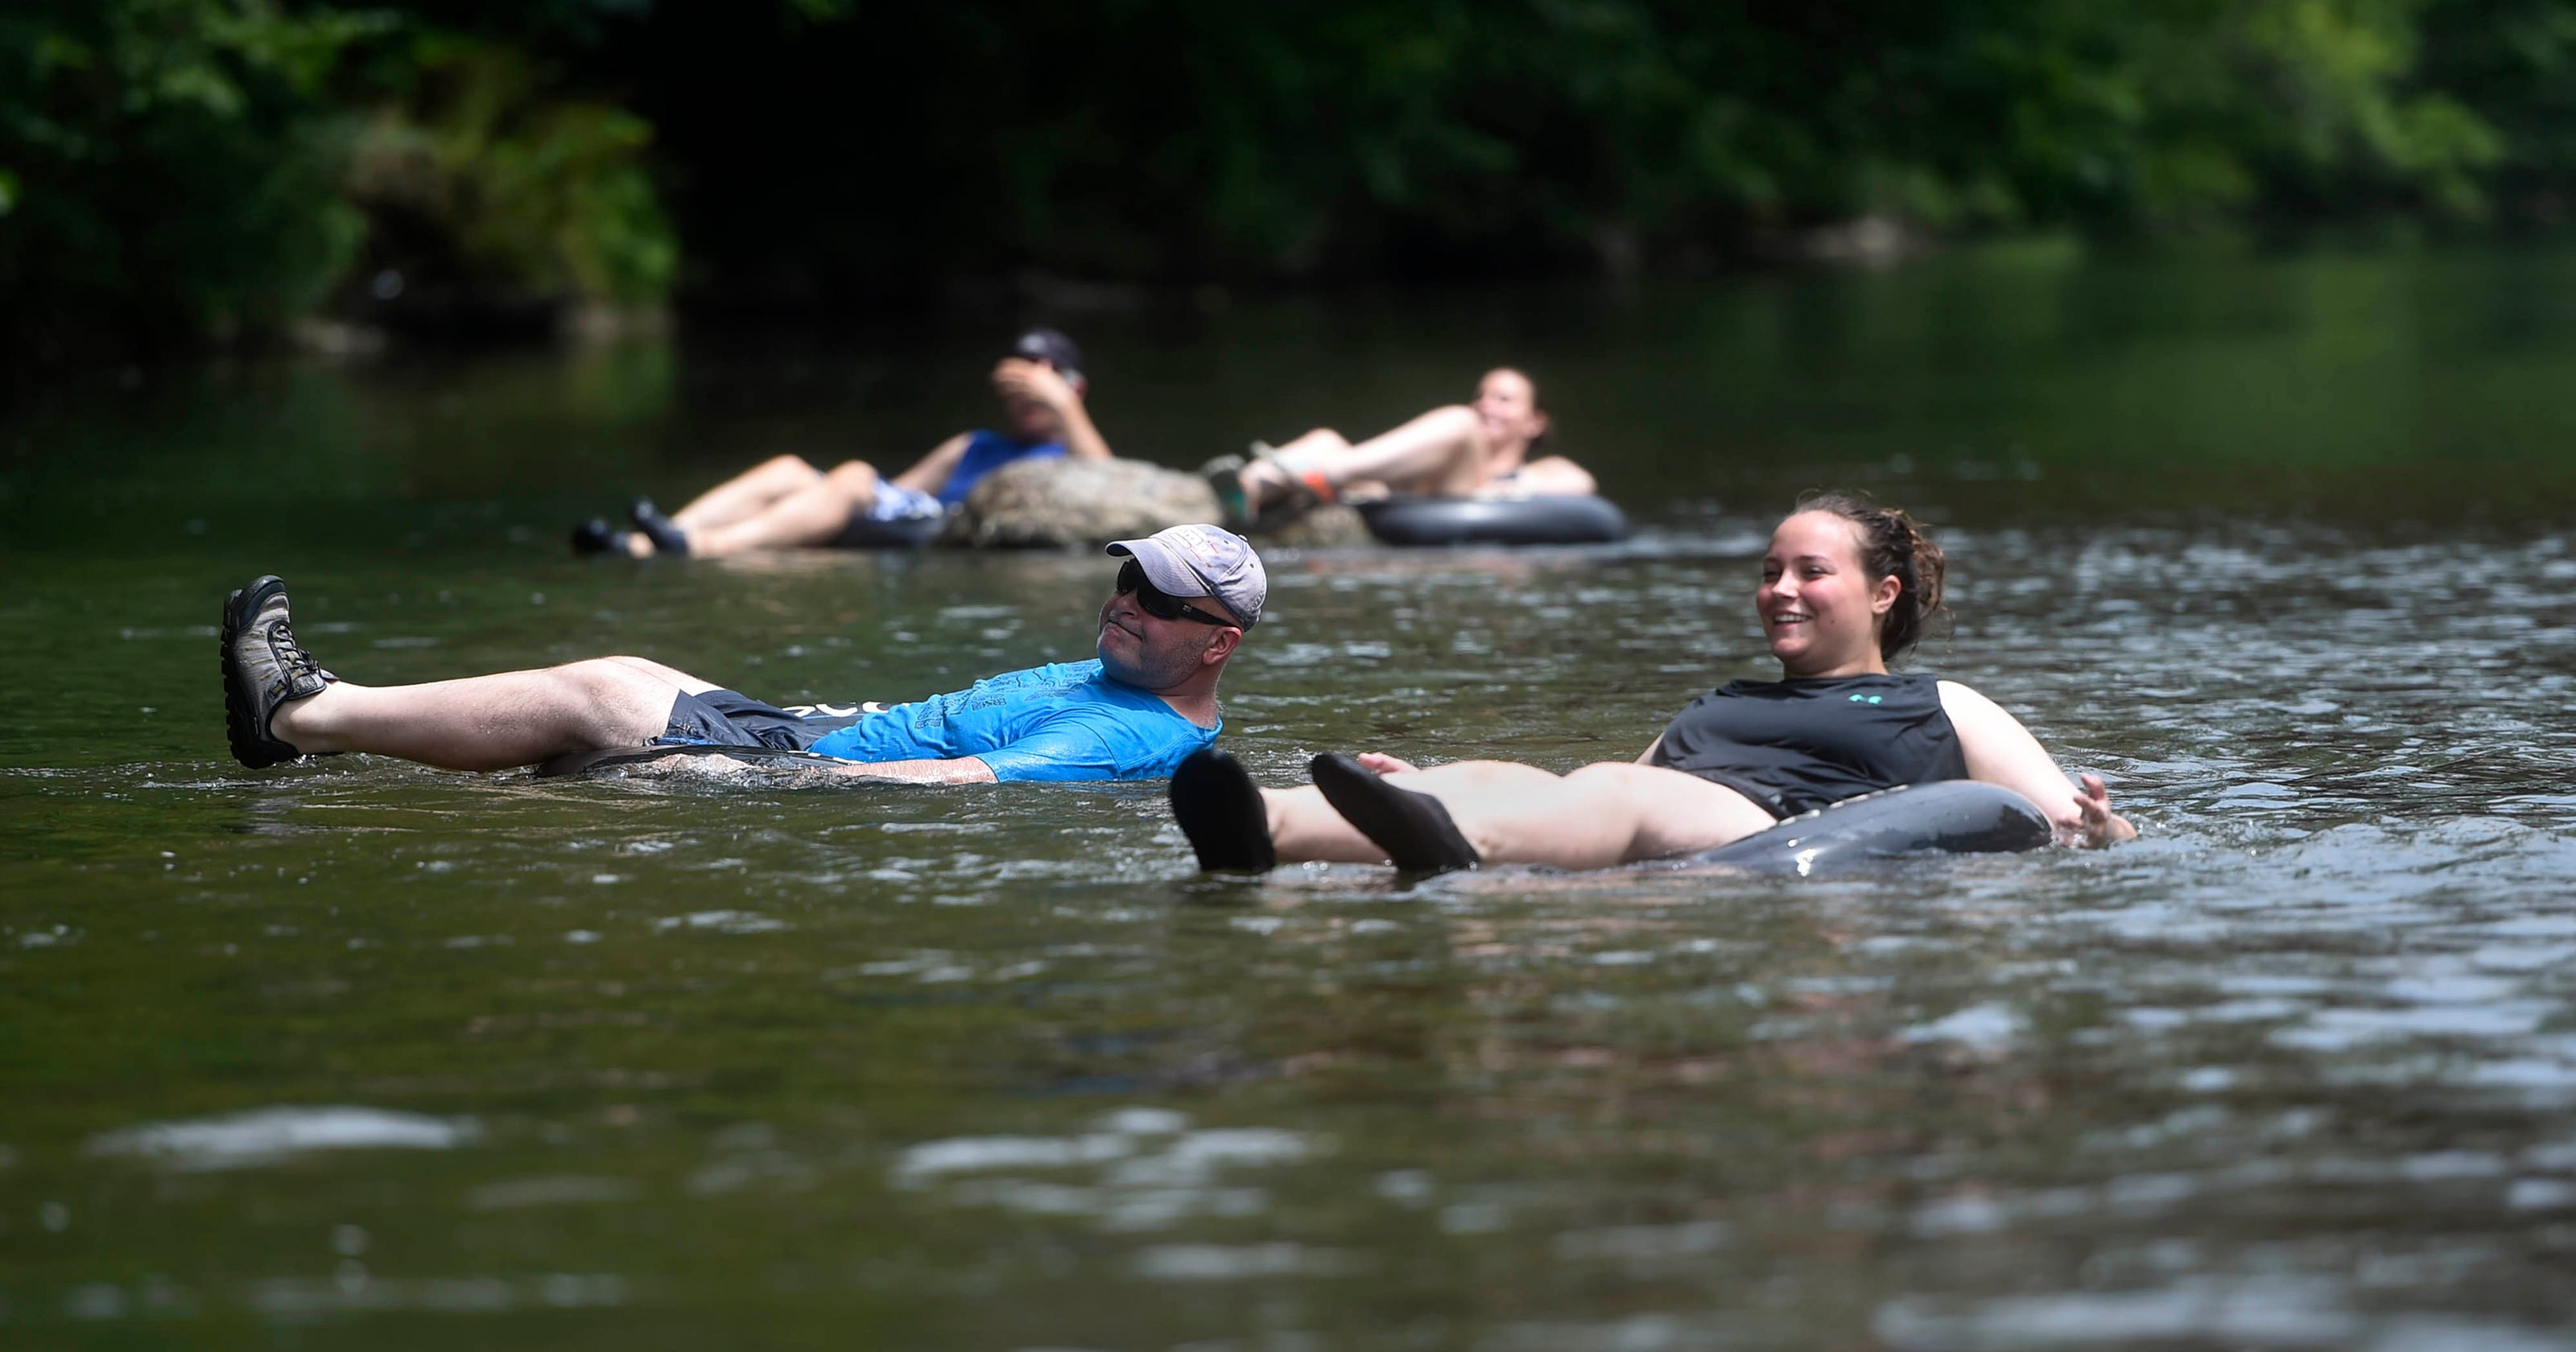 4 best places for tubing near York County